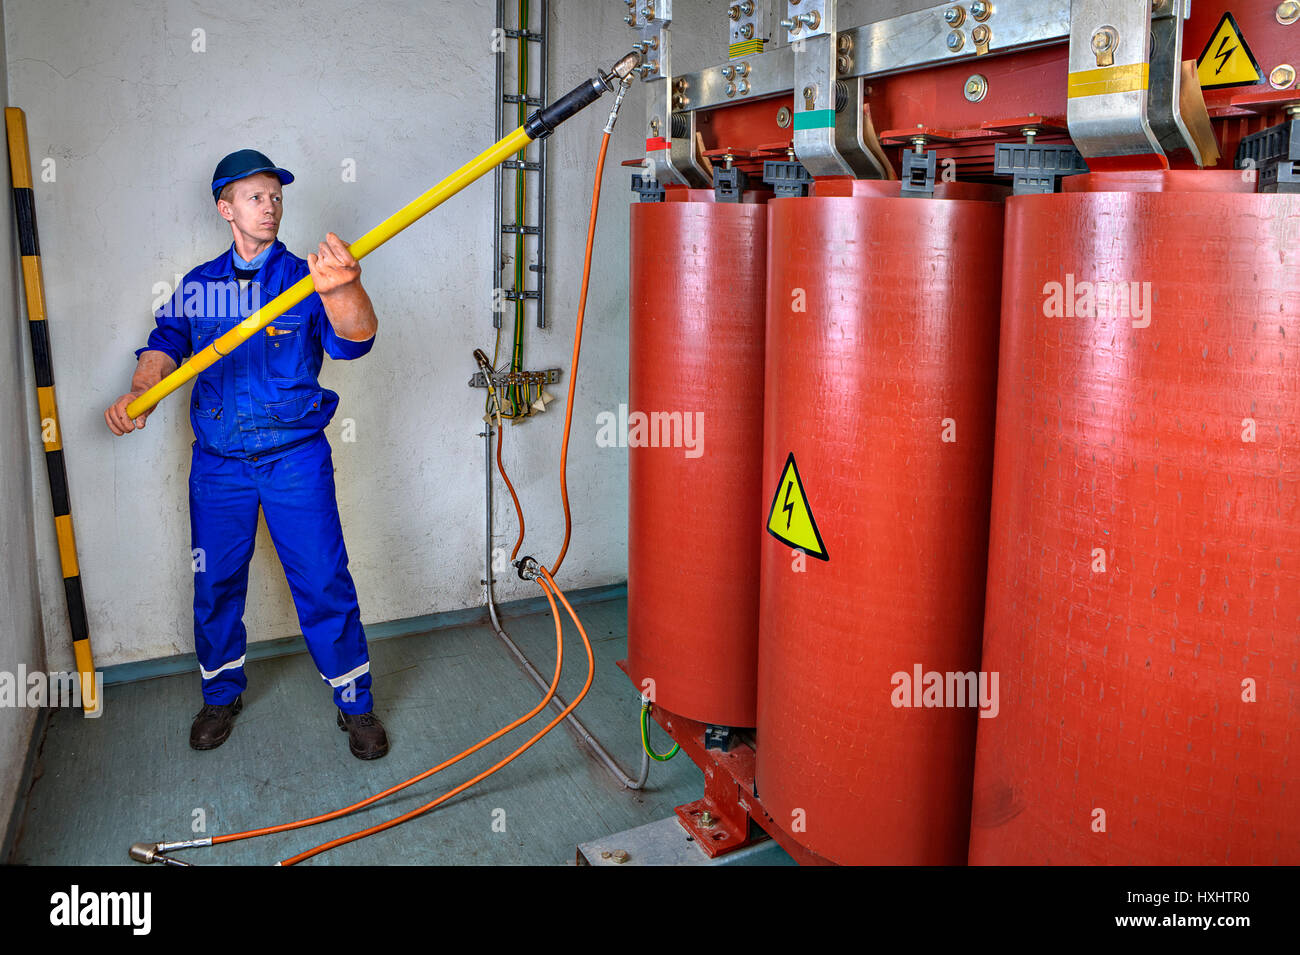 High Voltage Grounding Stick : Electrical safety electrician engineer impose earth